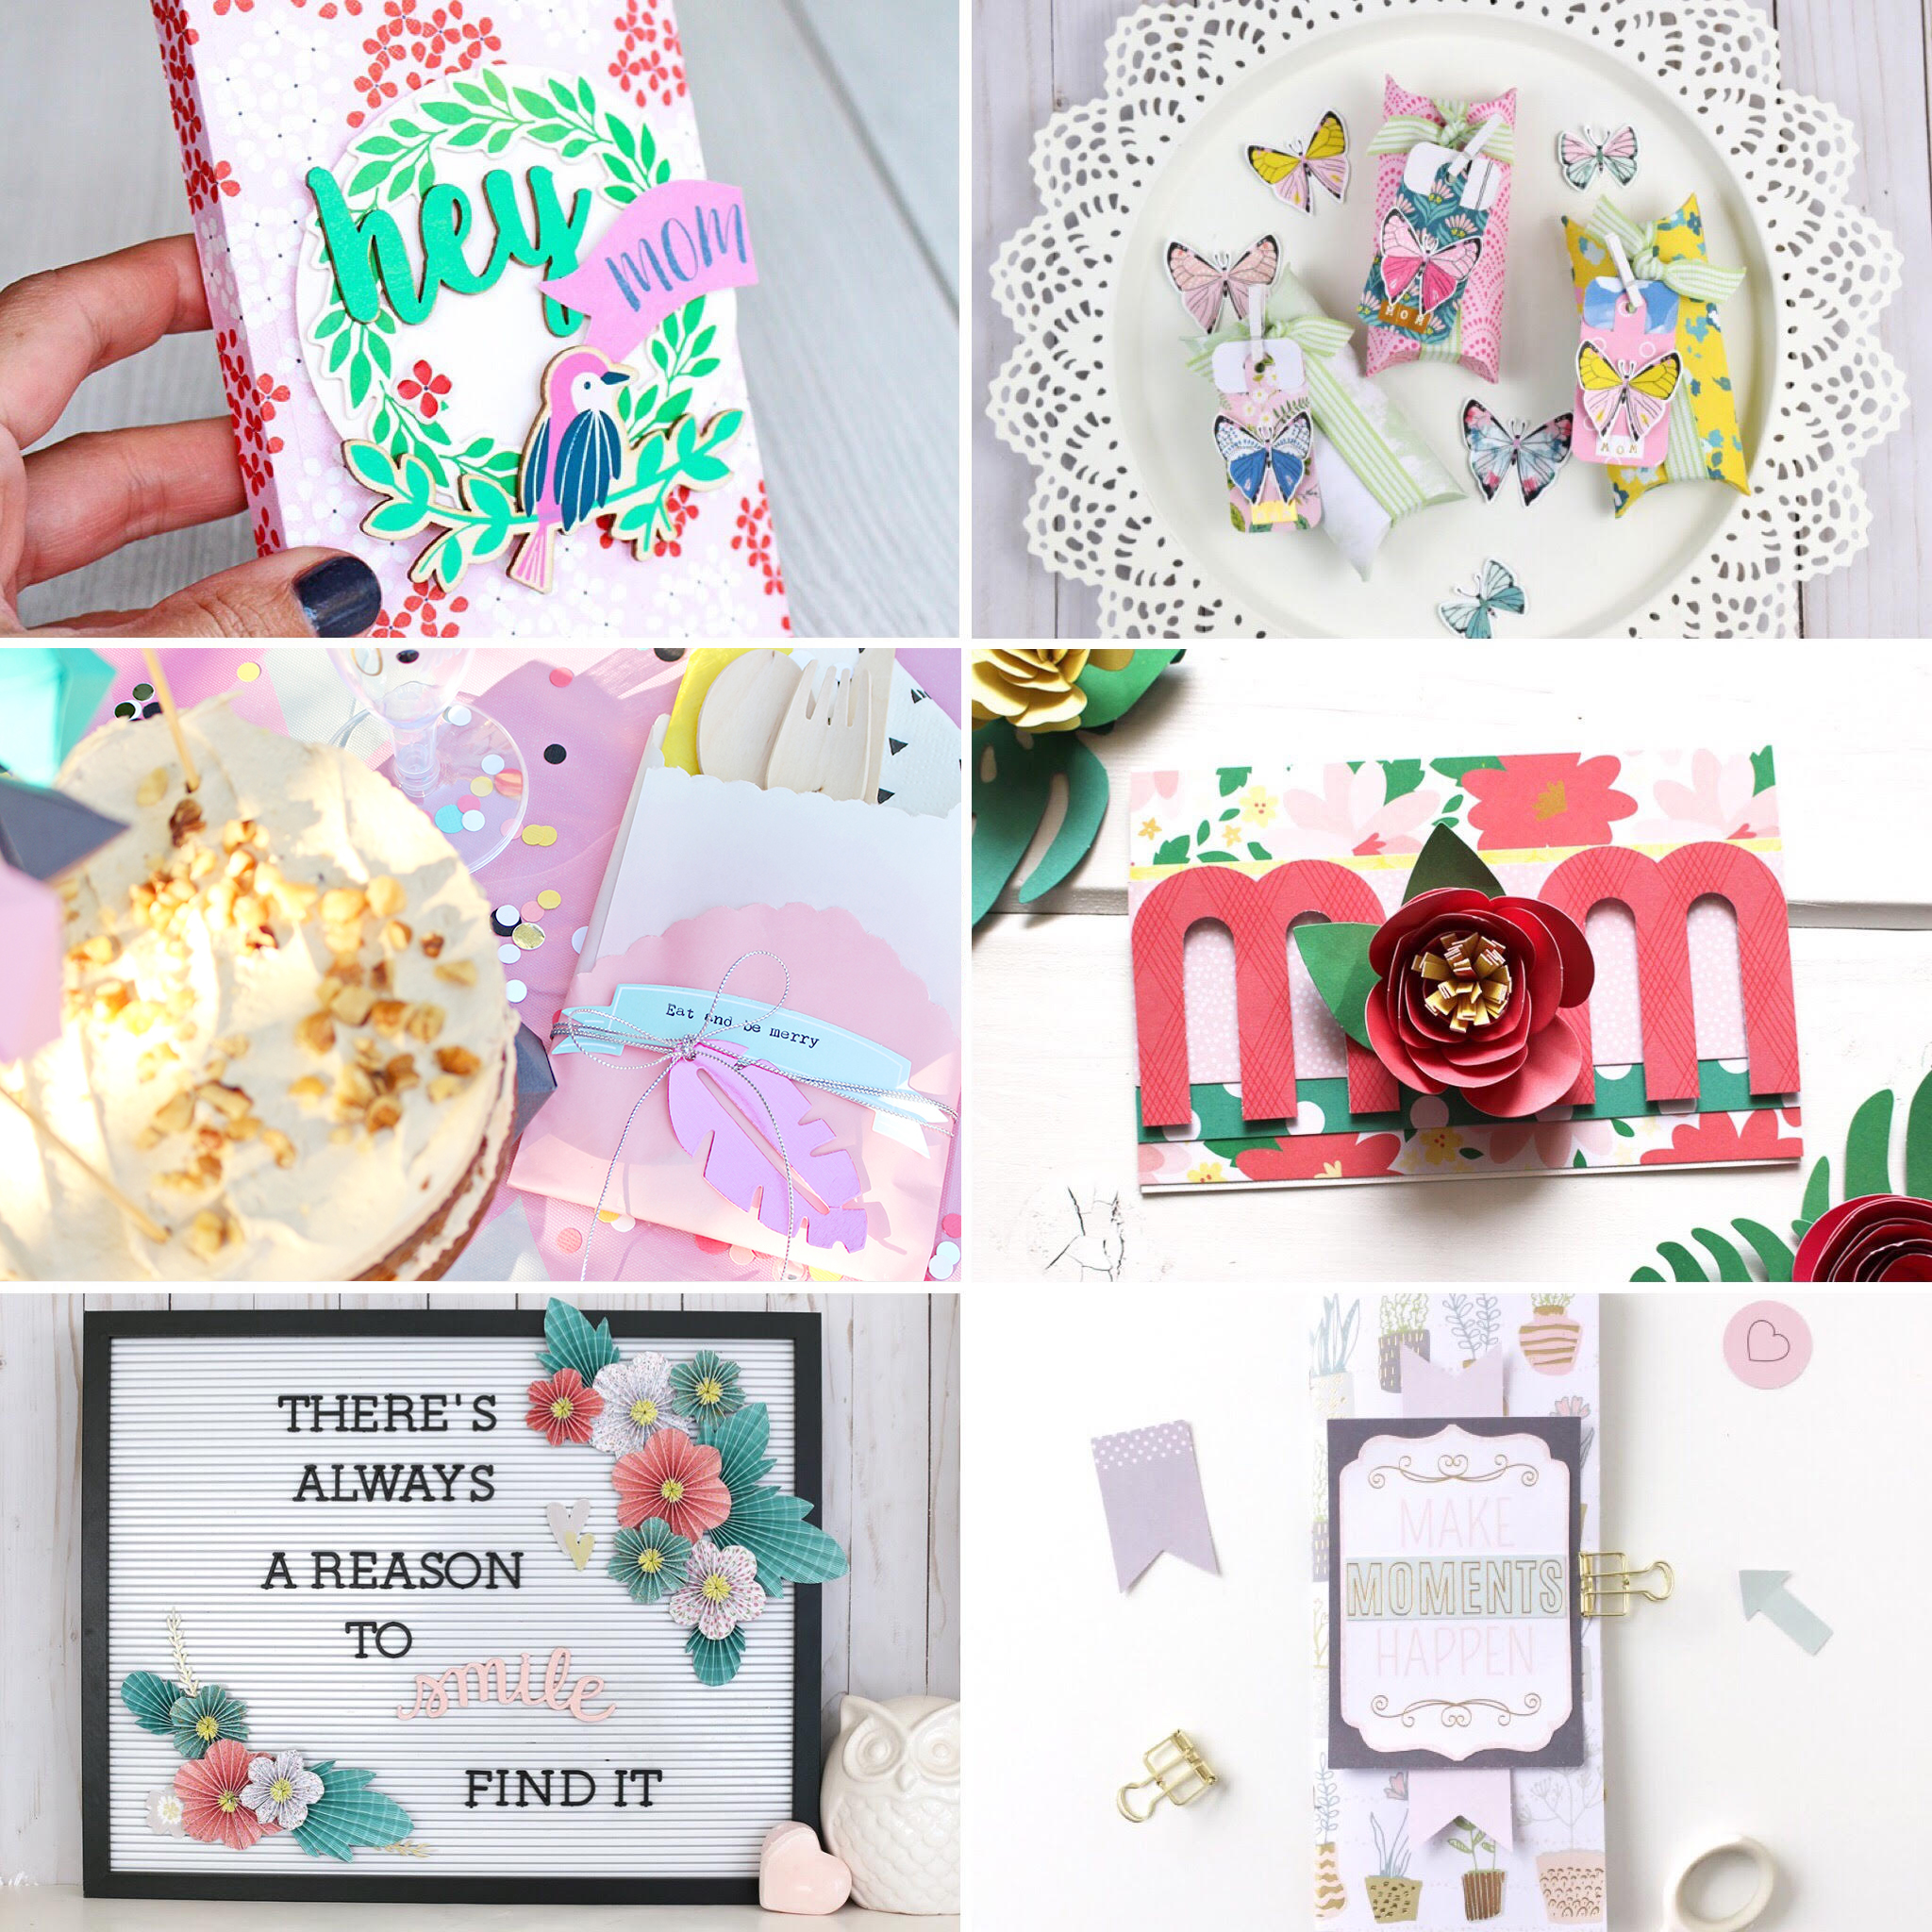 2019 Mother's Day Handmade Gift Guide